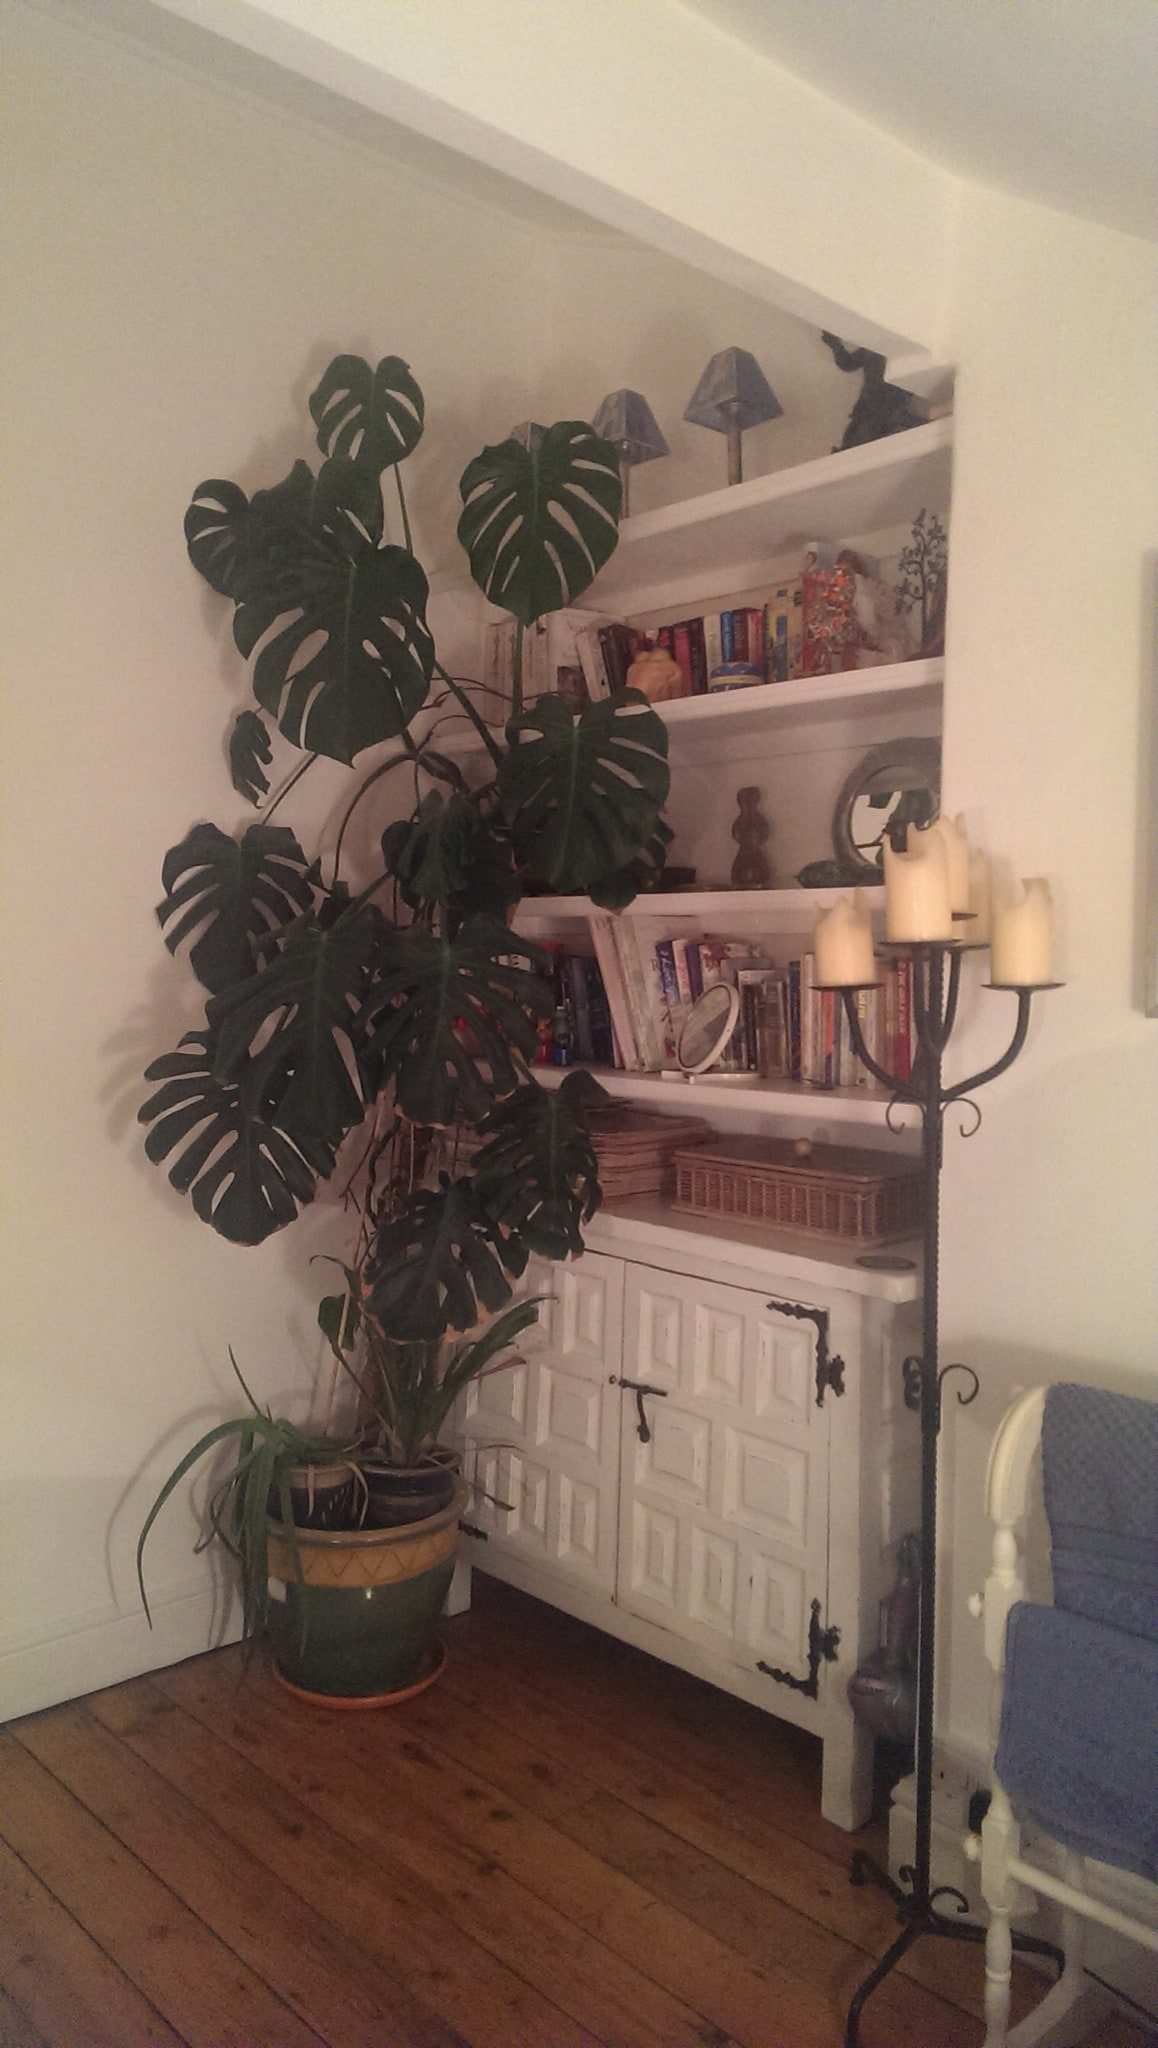 The 33 year old cheese plant that towers above most brings an air of life to the room.